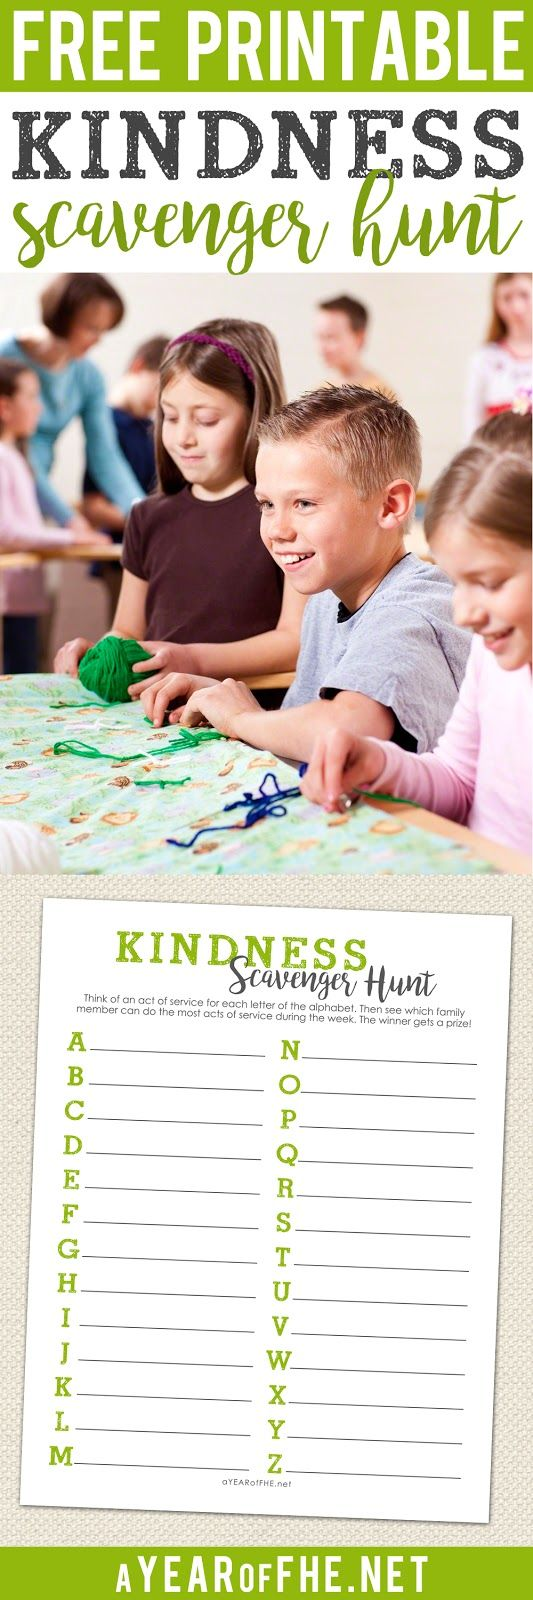 A Year of FHE // This is such a great idea! A family Kindness Scavenger Hunt! Choose a different service activity for each letter of the alphabet. Then post the list somewhere everyone can see.  Family members get a point for each task they complete during the week.  At the end of the week the family member with the most points wins! #service #lds #fhe